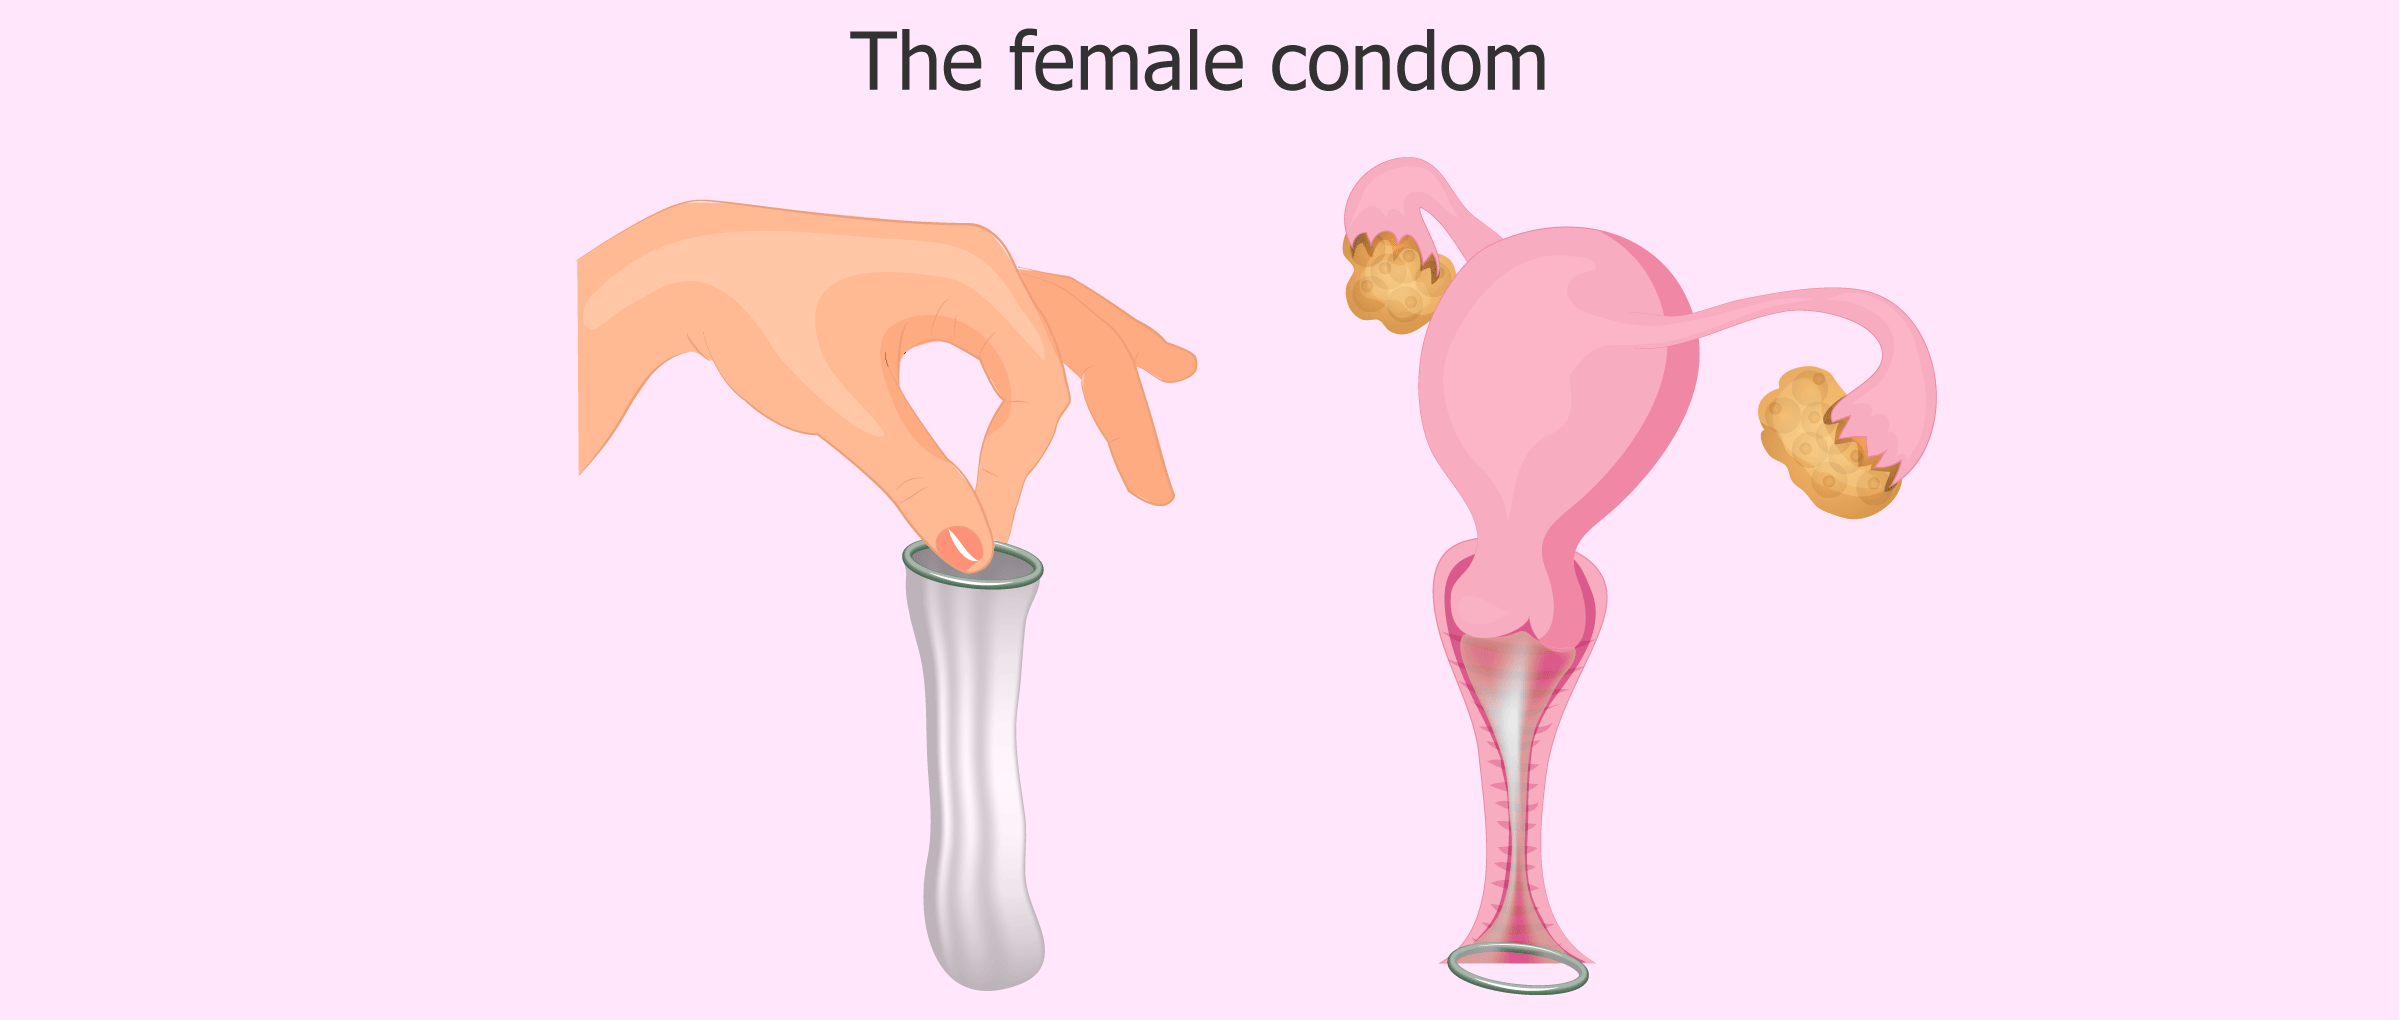 How to use the female condom